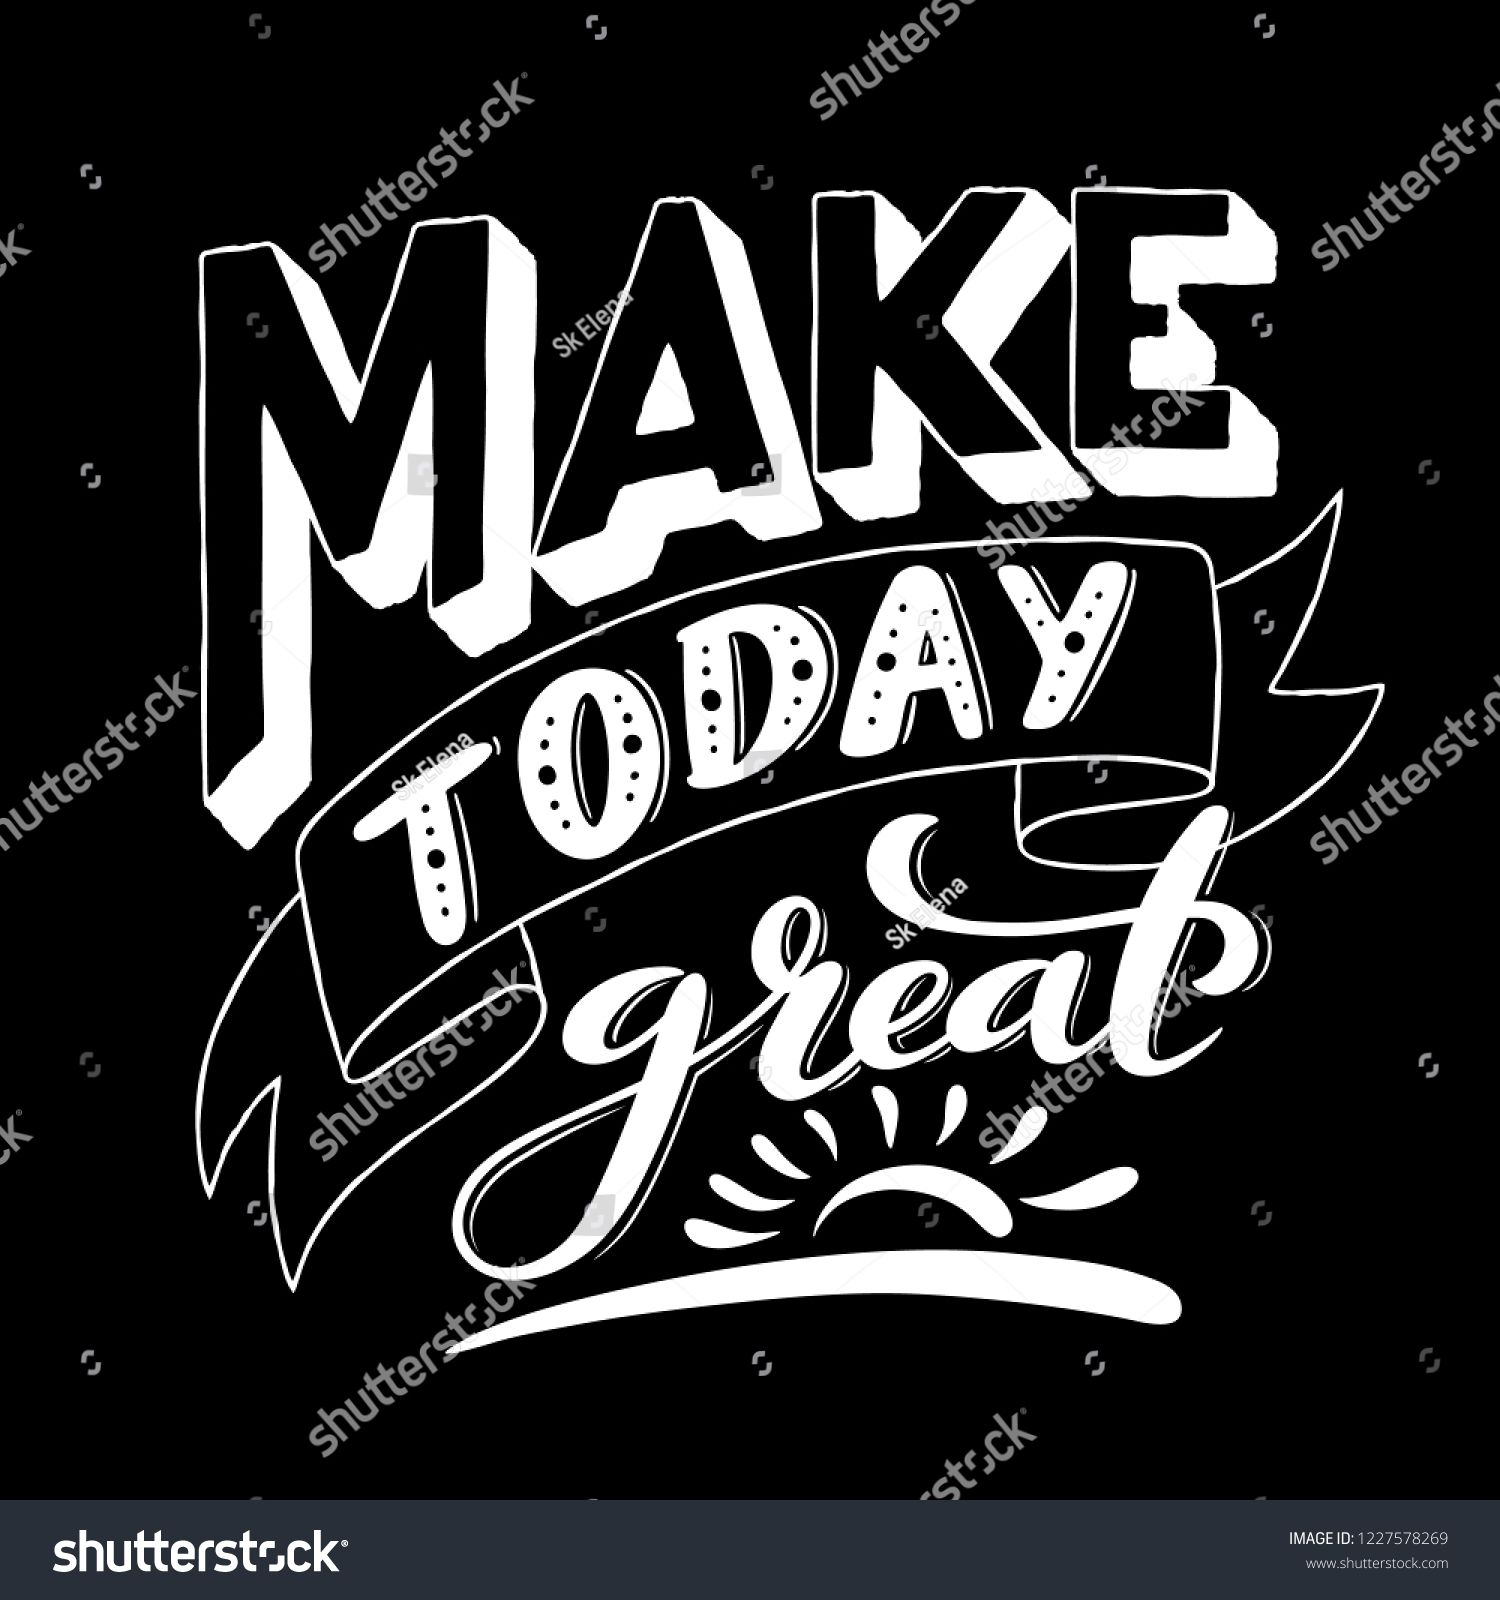 Make today great. Inspirational phrase. Modern calligraphy